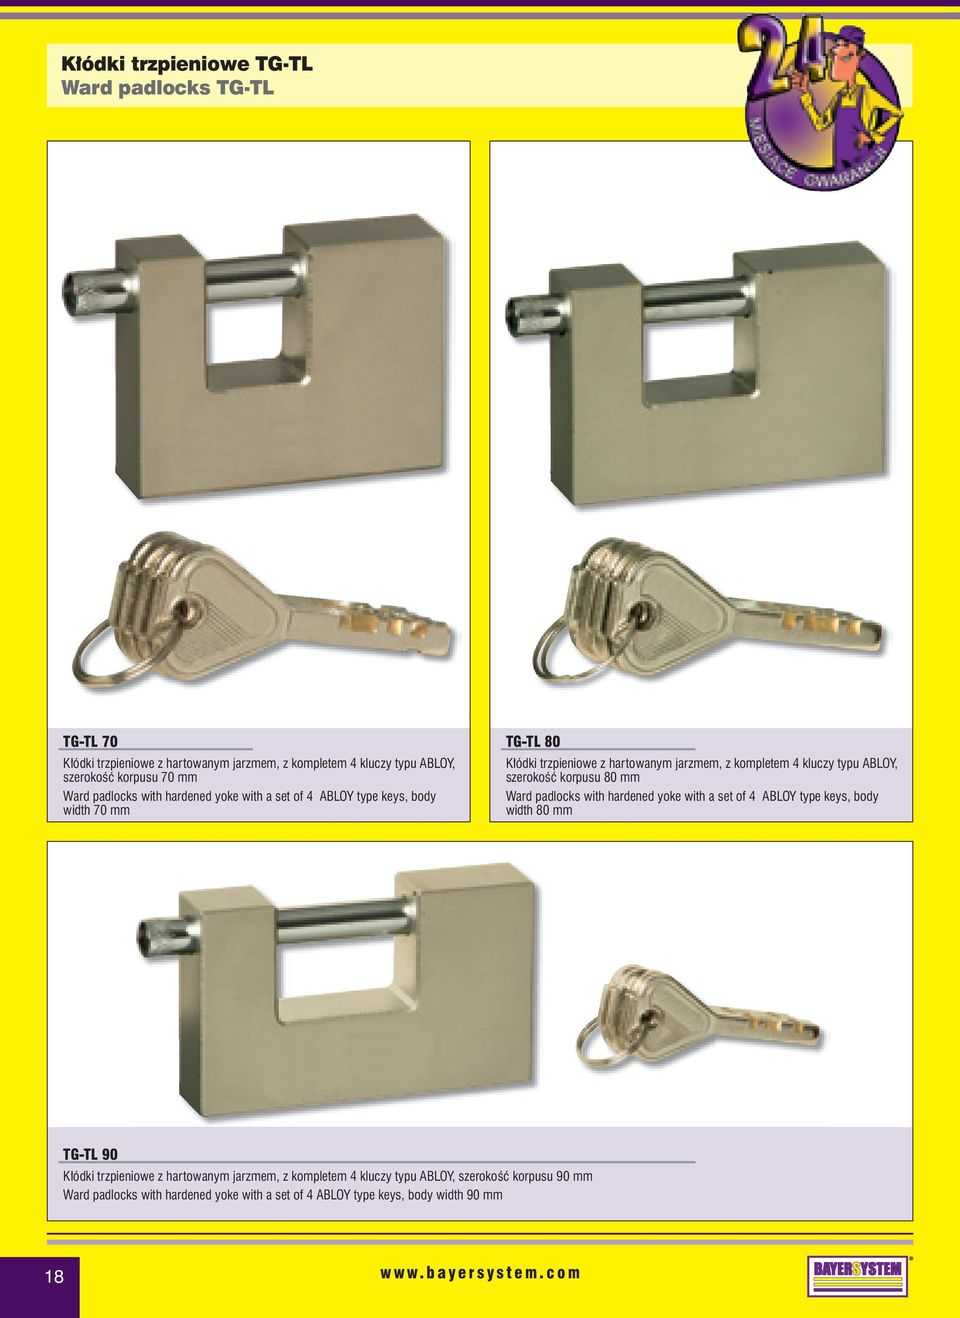 typu ABLOY, szerokoêç korpusu 80 mm Ward padlocks with hardened yoke with a set of 4 ABLOY type keys, body width 80 mm TG-TL 90 K ódki trzpieniowe z